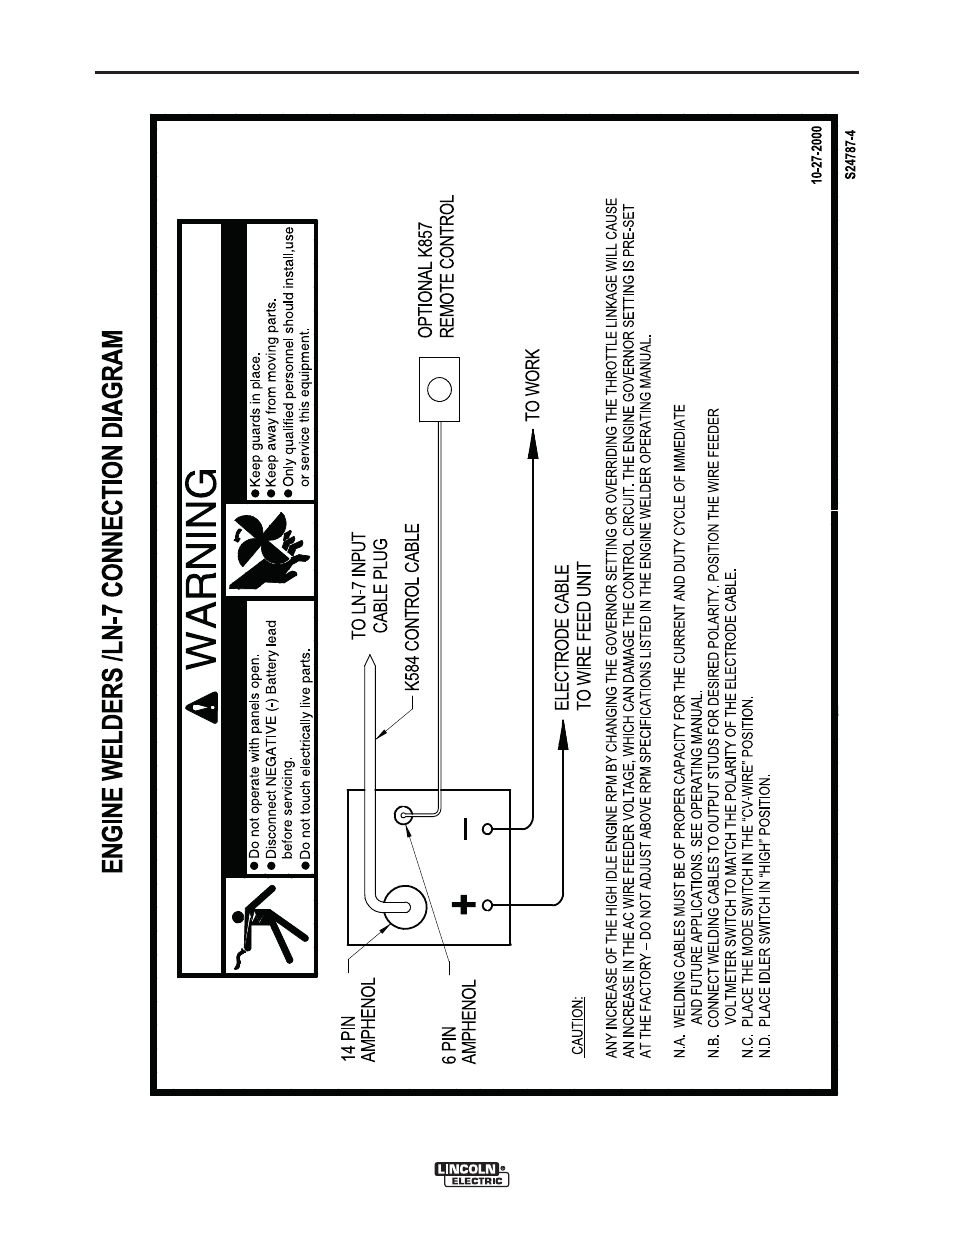 Lincoln Ranger 305d Wiring Diagram Library Electric Wire Diagrams Im10158 305 G Efi User Manual Page 38 64